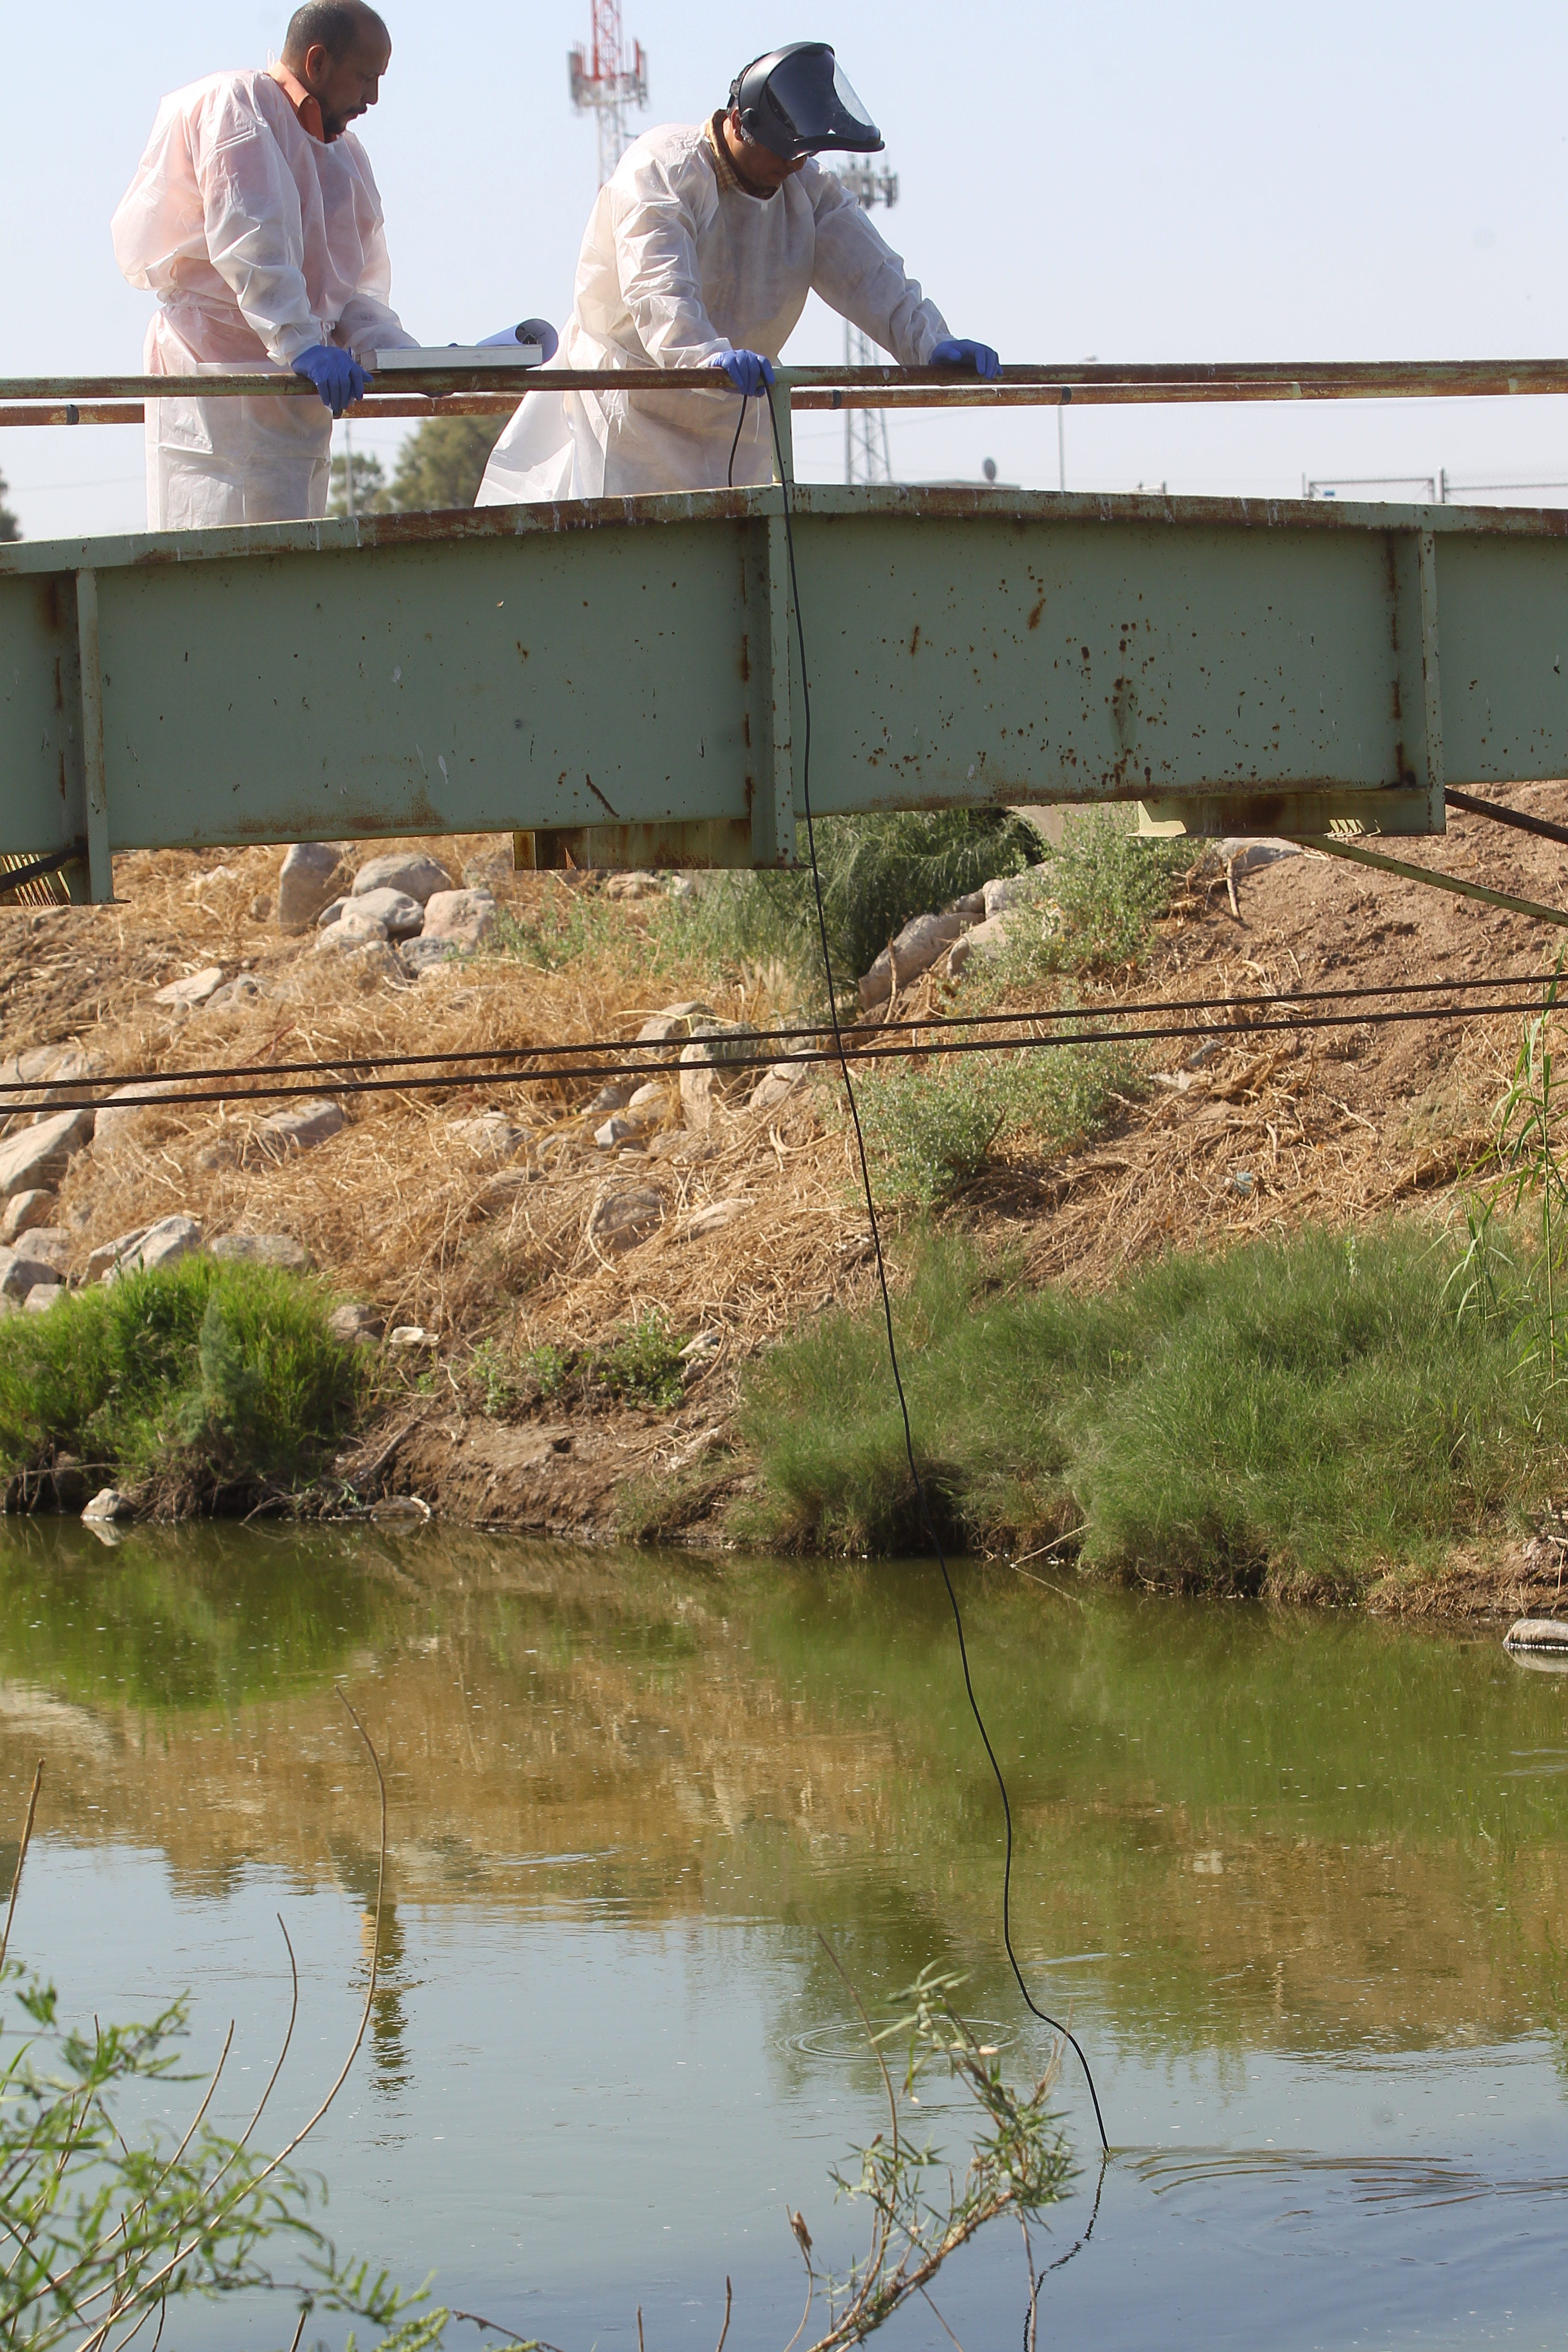 Employees of the California Regional Water Quality Control Board take a water sample from the New River in Calexico.